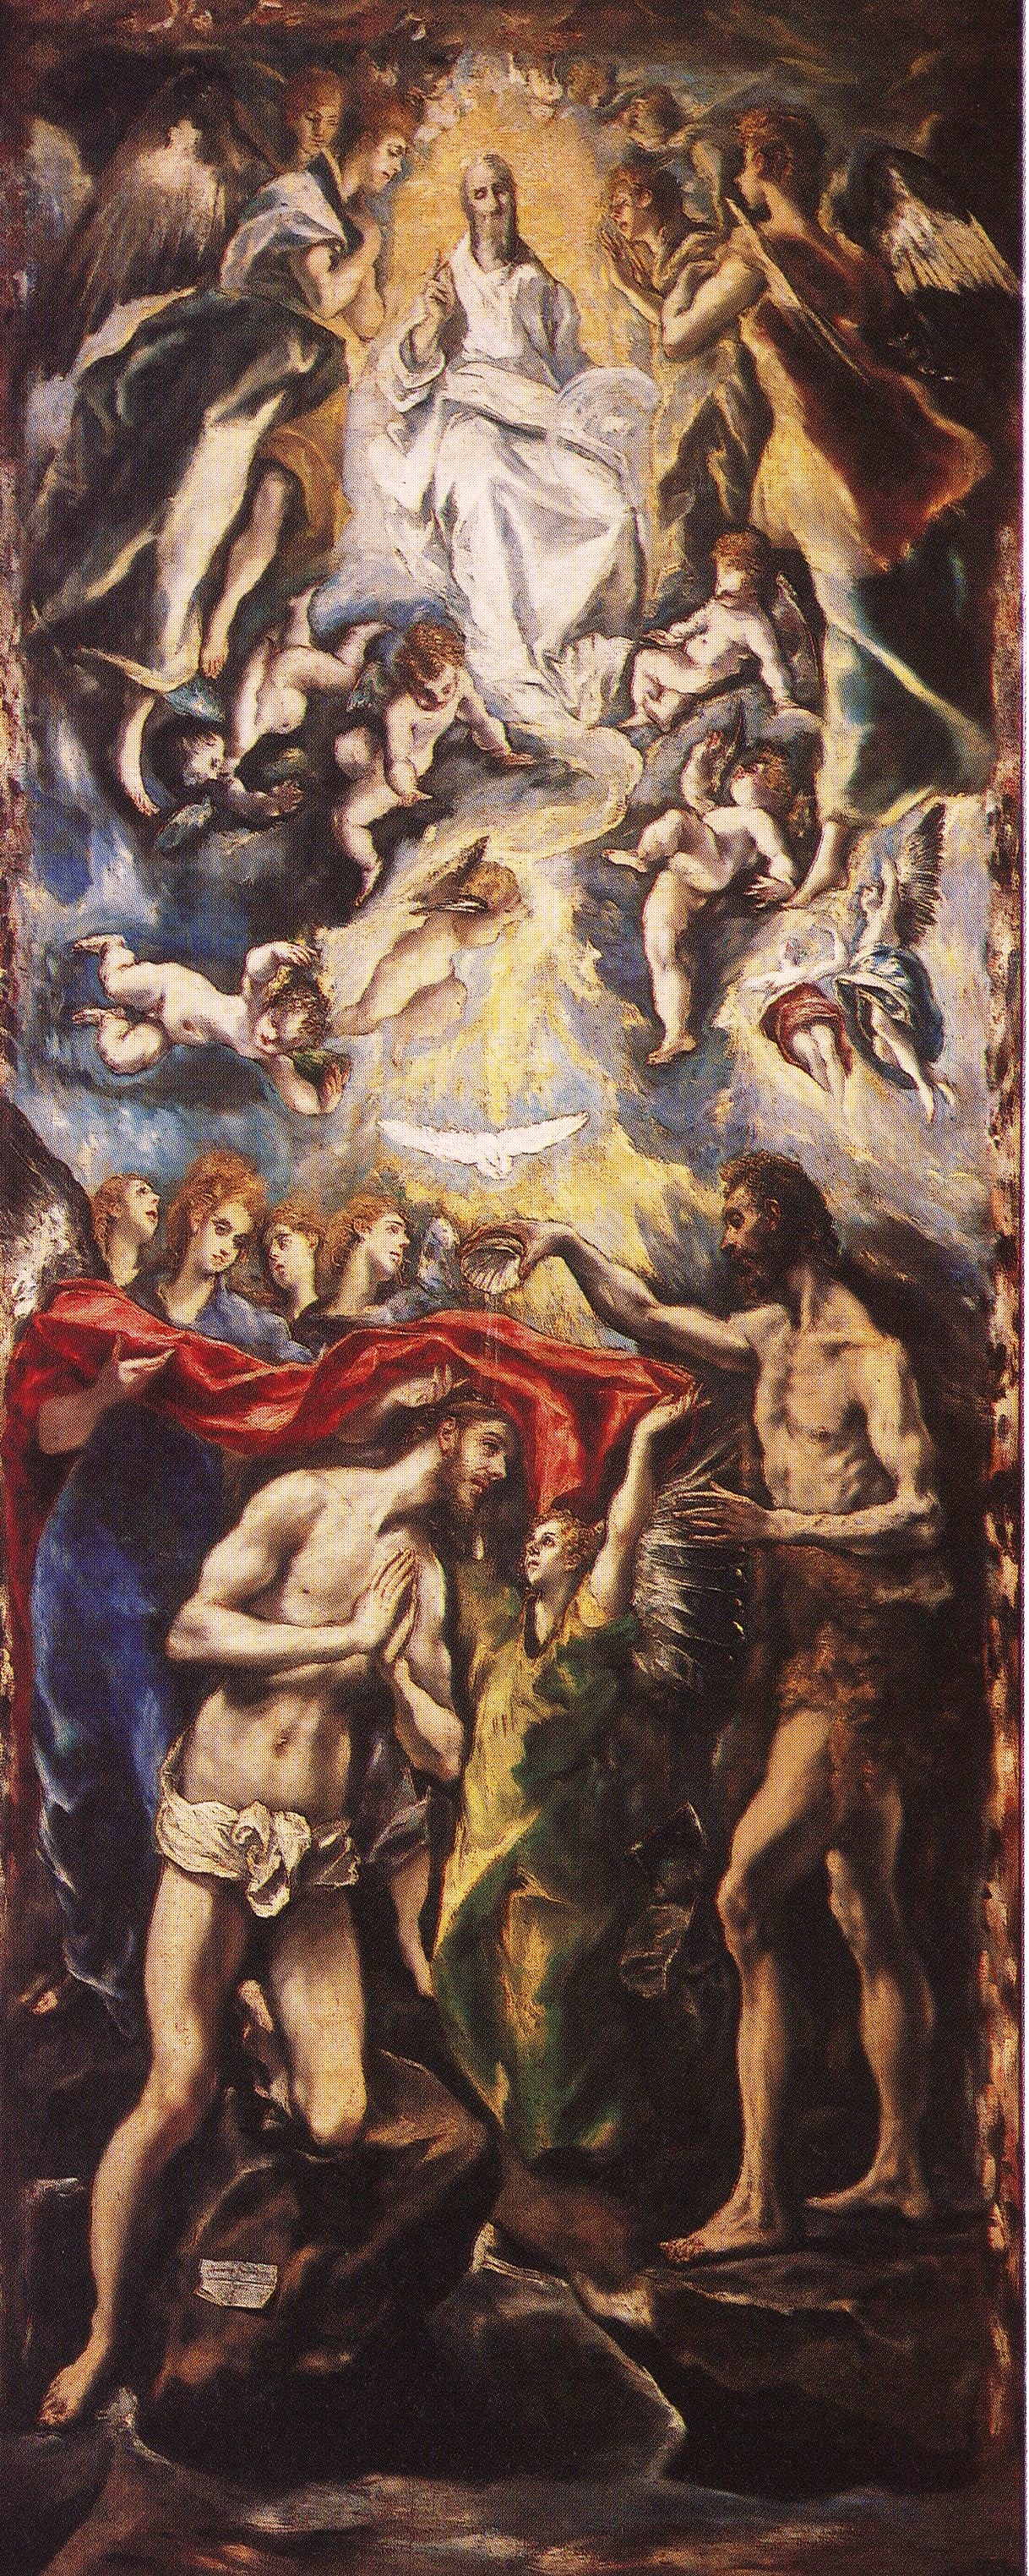 https://i0.wp.com/upload.wikimedia.org/wikipedia/commons/1/14/Greco_Bautismo_de_Cristo_1597.jpg